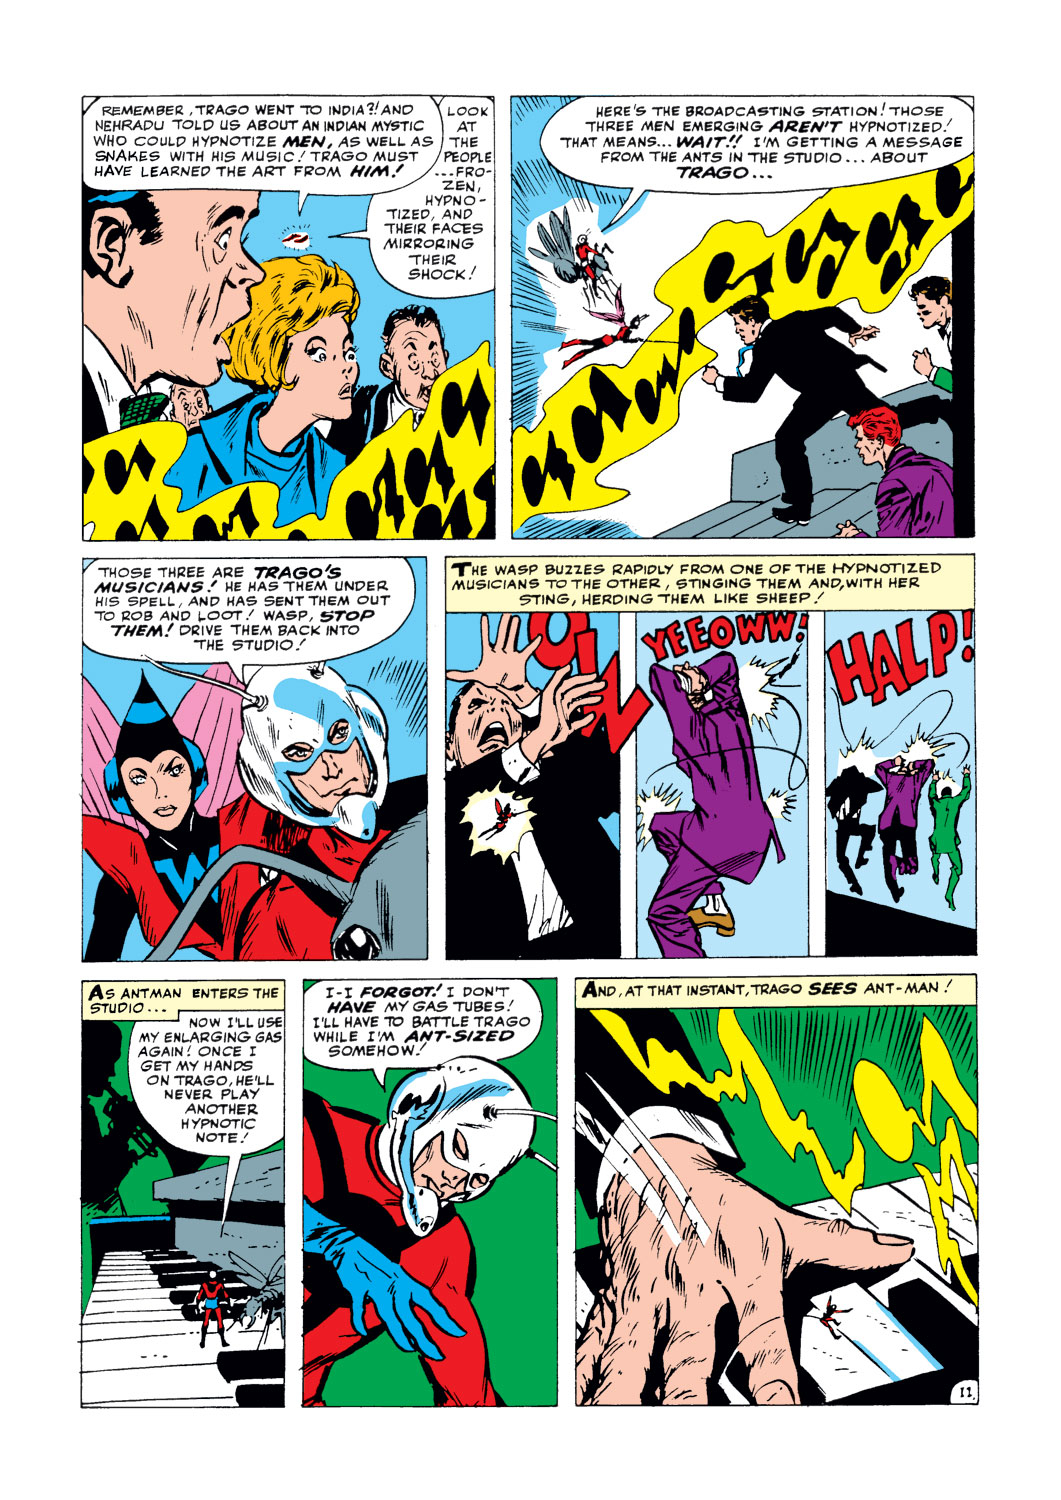 You just got STUNG!: The Wasp Appreciation - Page 191